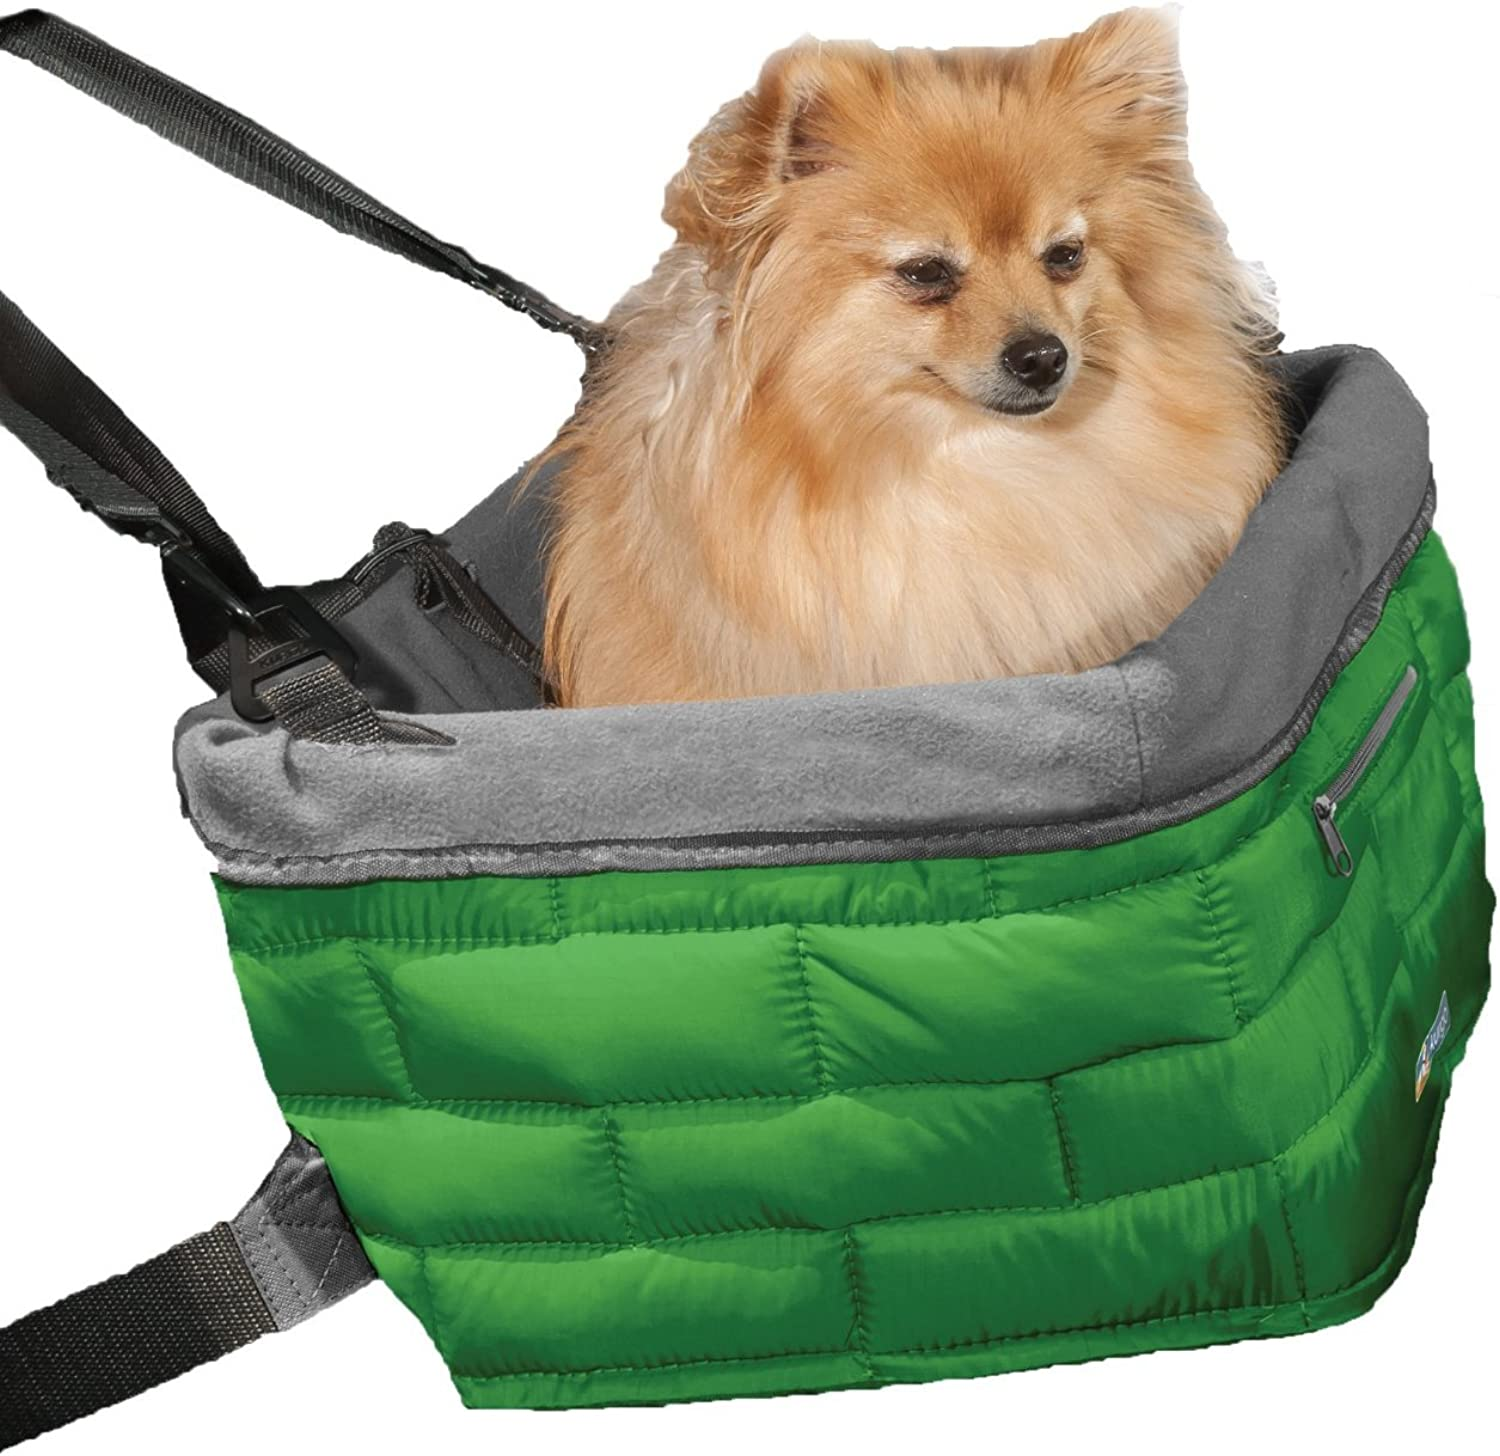 Kurgo Loft Dog Booster Seat for Cars with Seat Belt Tether, Green Grey